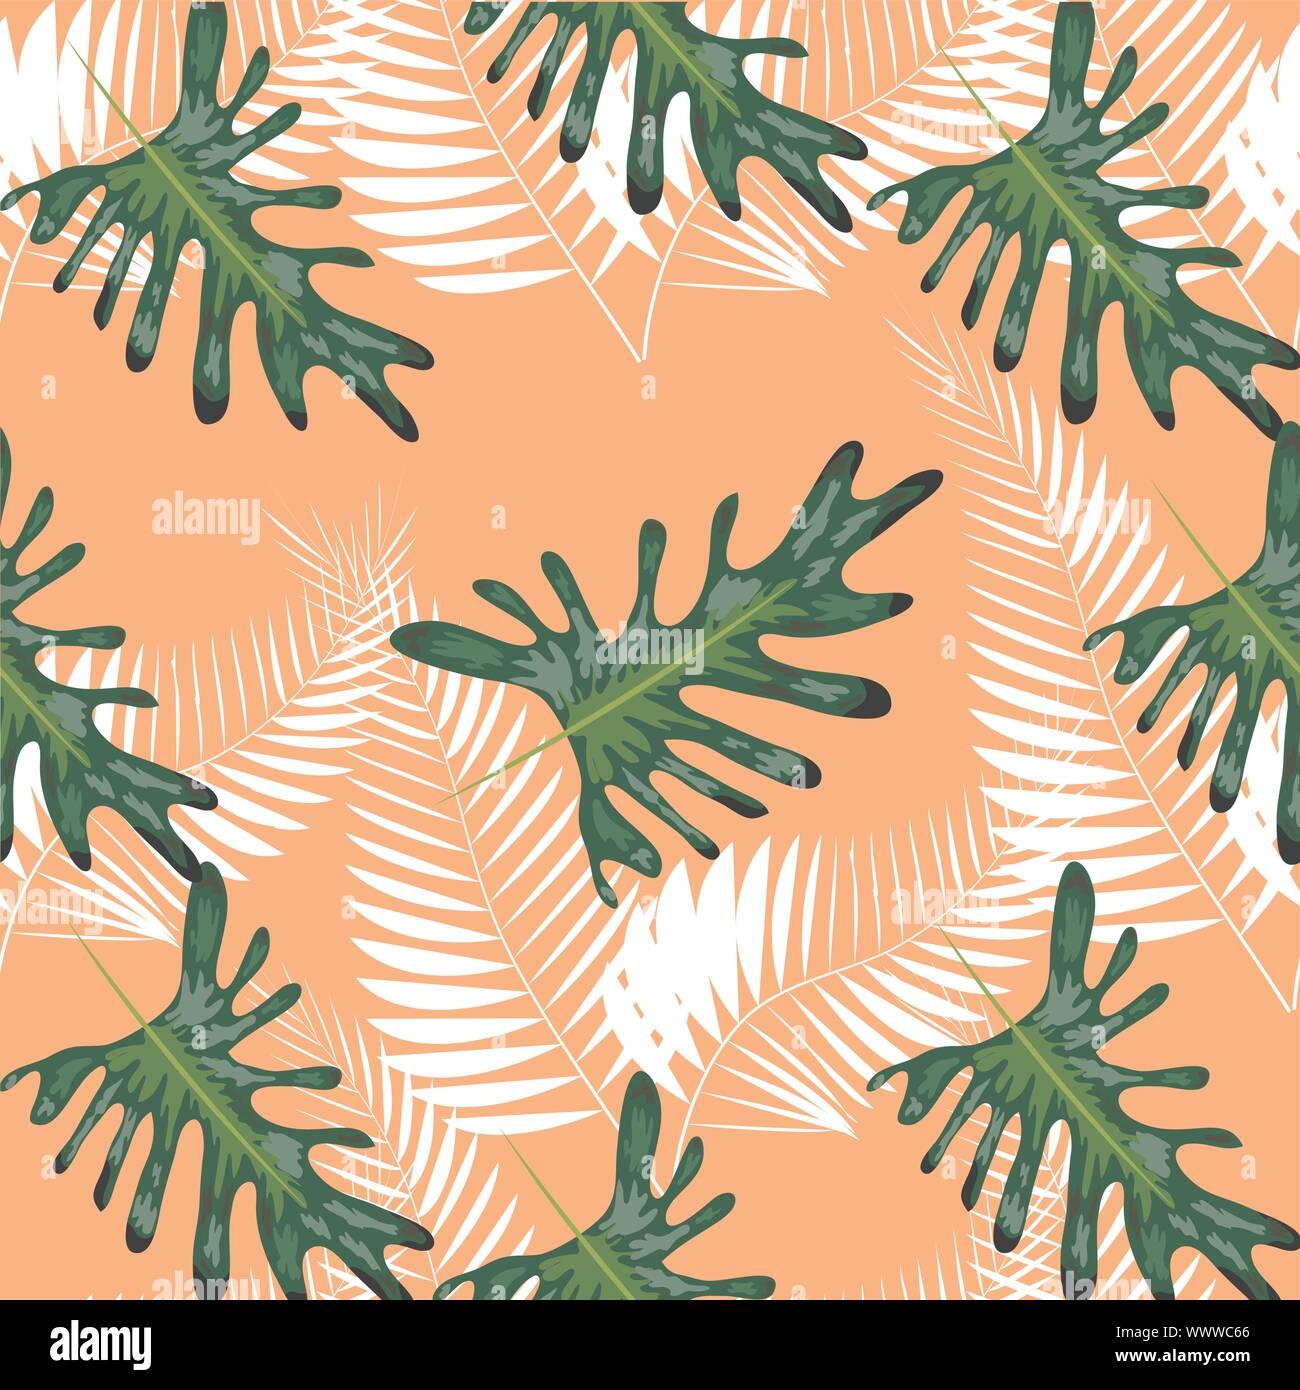 Tropical Leaves Palms Monstera Leaf Floral Seamless Pattern Background Stock Vector Image Art Alamy Aliexpress carries many tropical leaf painting home related products, including art plant , botanic print , picture with leaves , plant poster , bathroom painting with frame , poster art tropic , am pm poster , canva city , monstera picture , art plant , botanic print , flower poster , poster art tropic , decorative. alamy